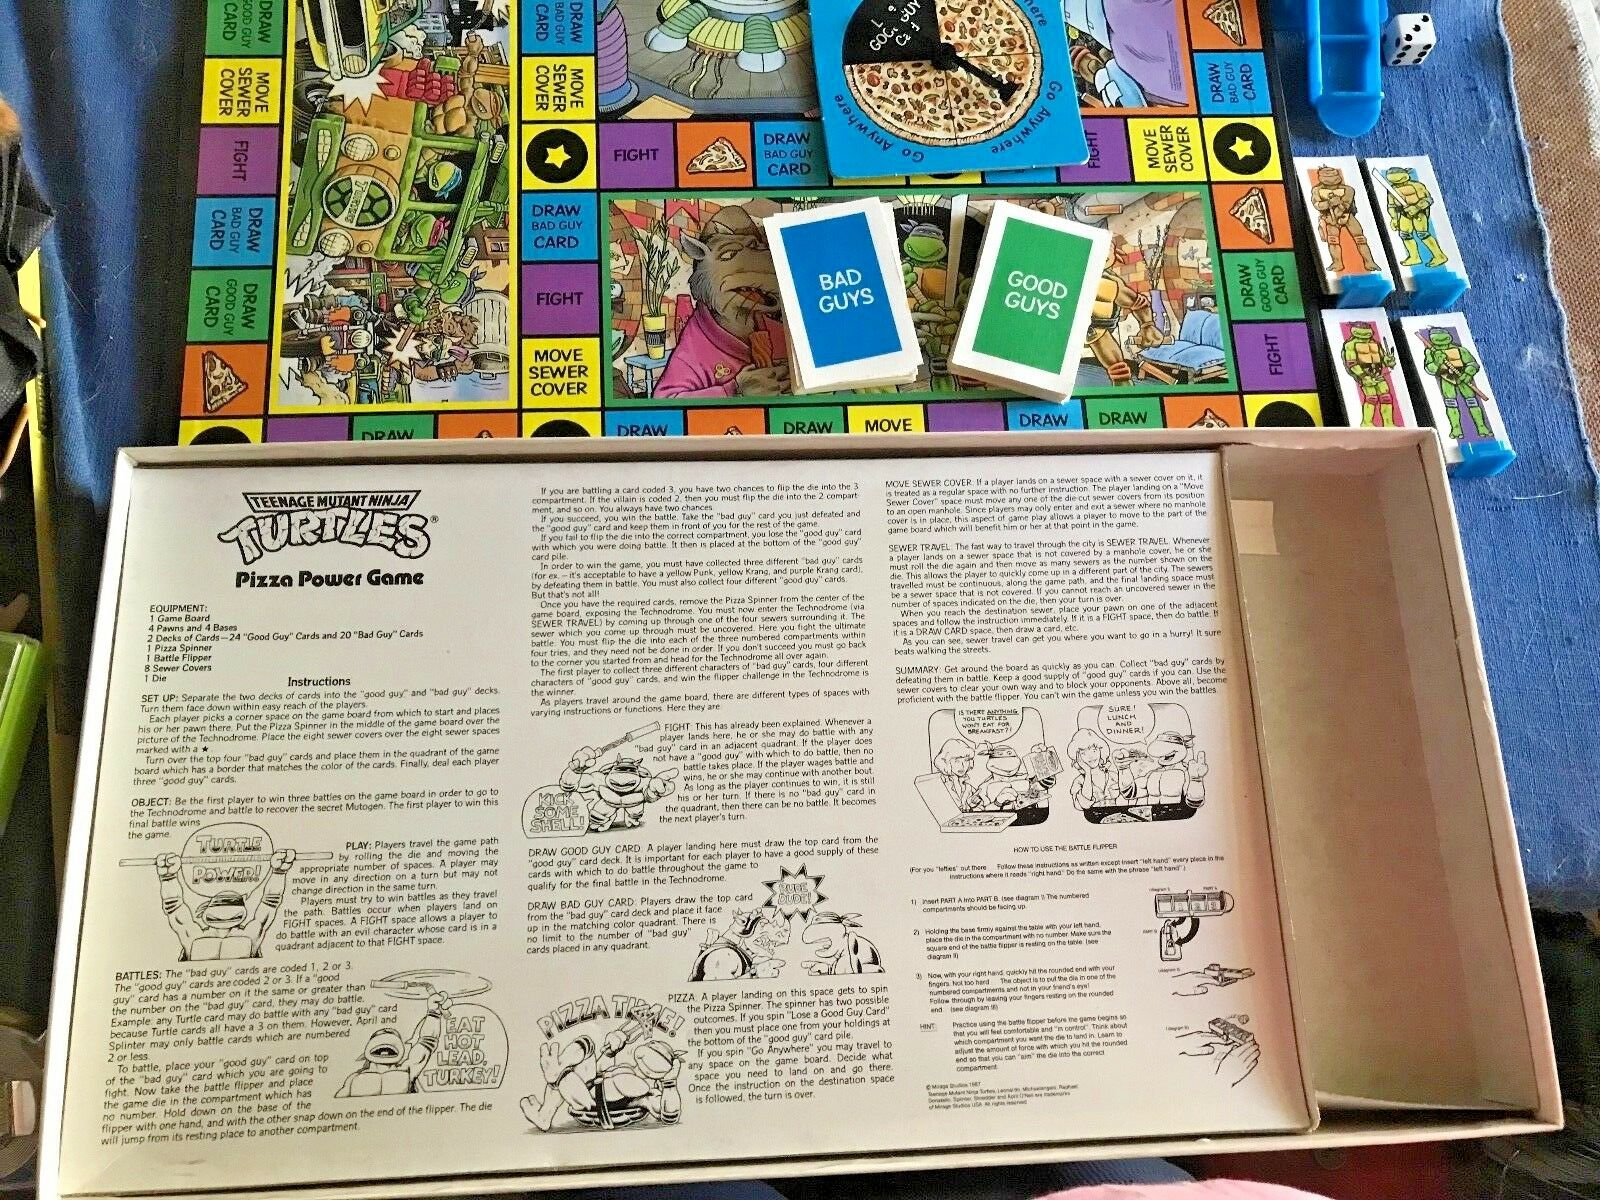 1989 1989 1989 TEENAGE MUTANT NINJA TURTLES PIZZA POWER GAME Nearly New pink ART Complete be671f